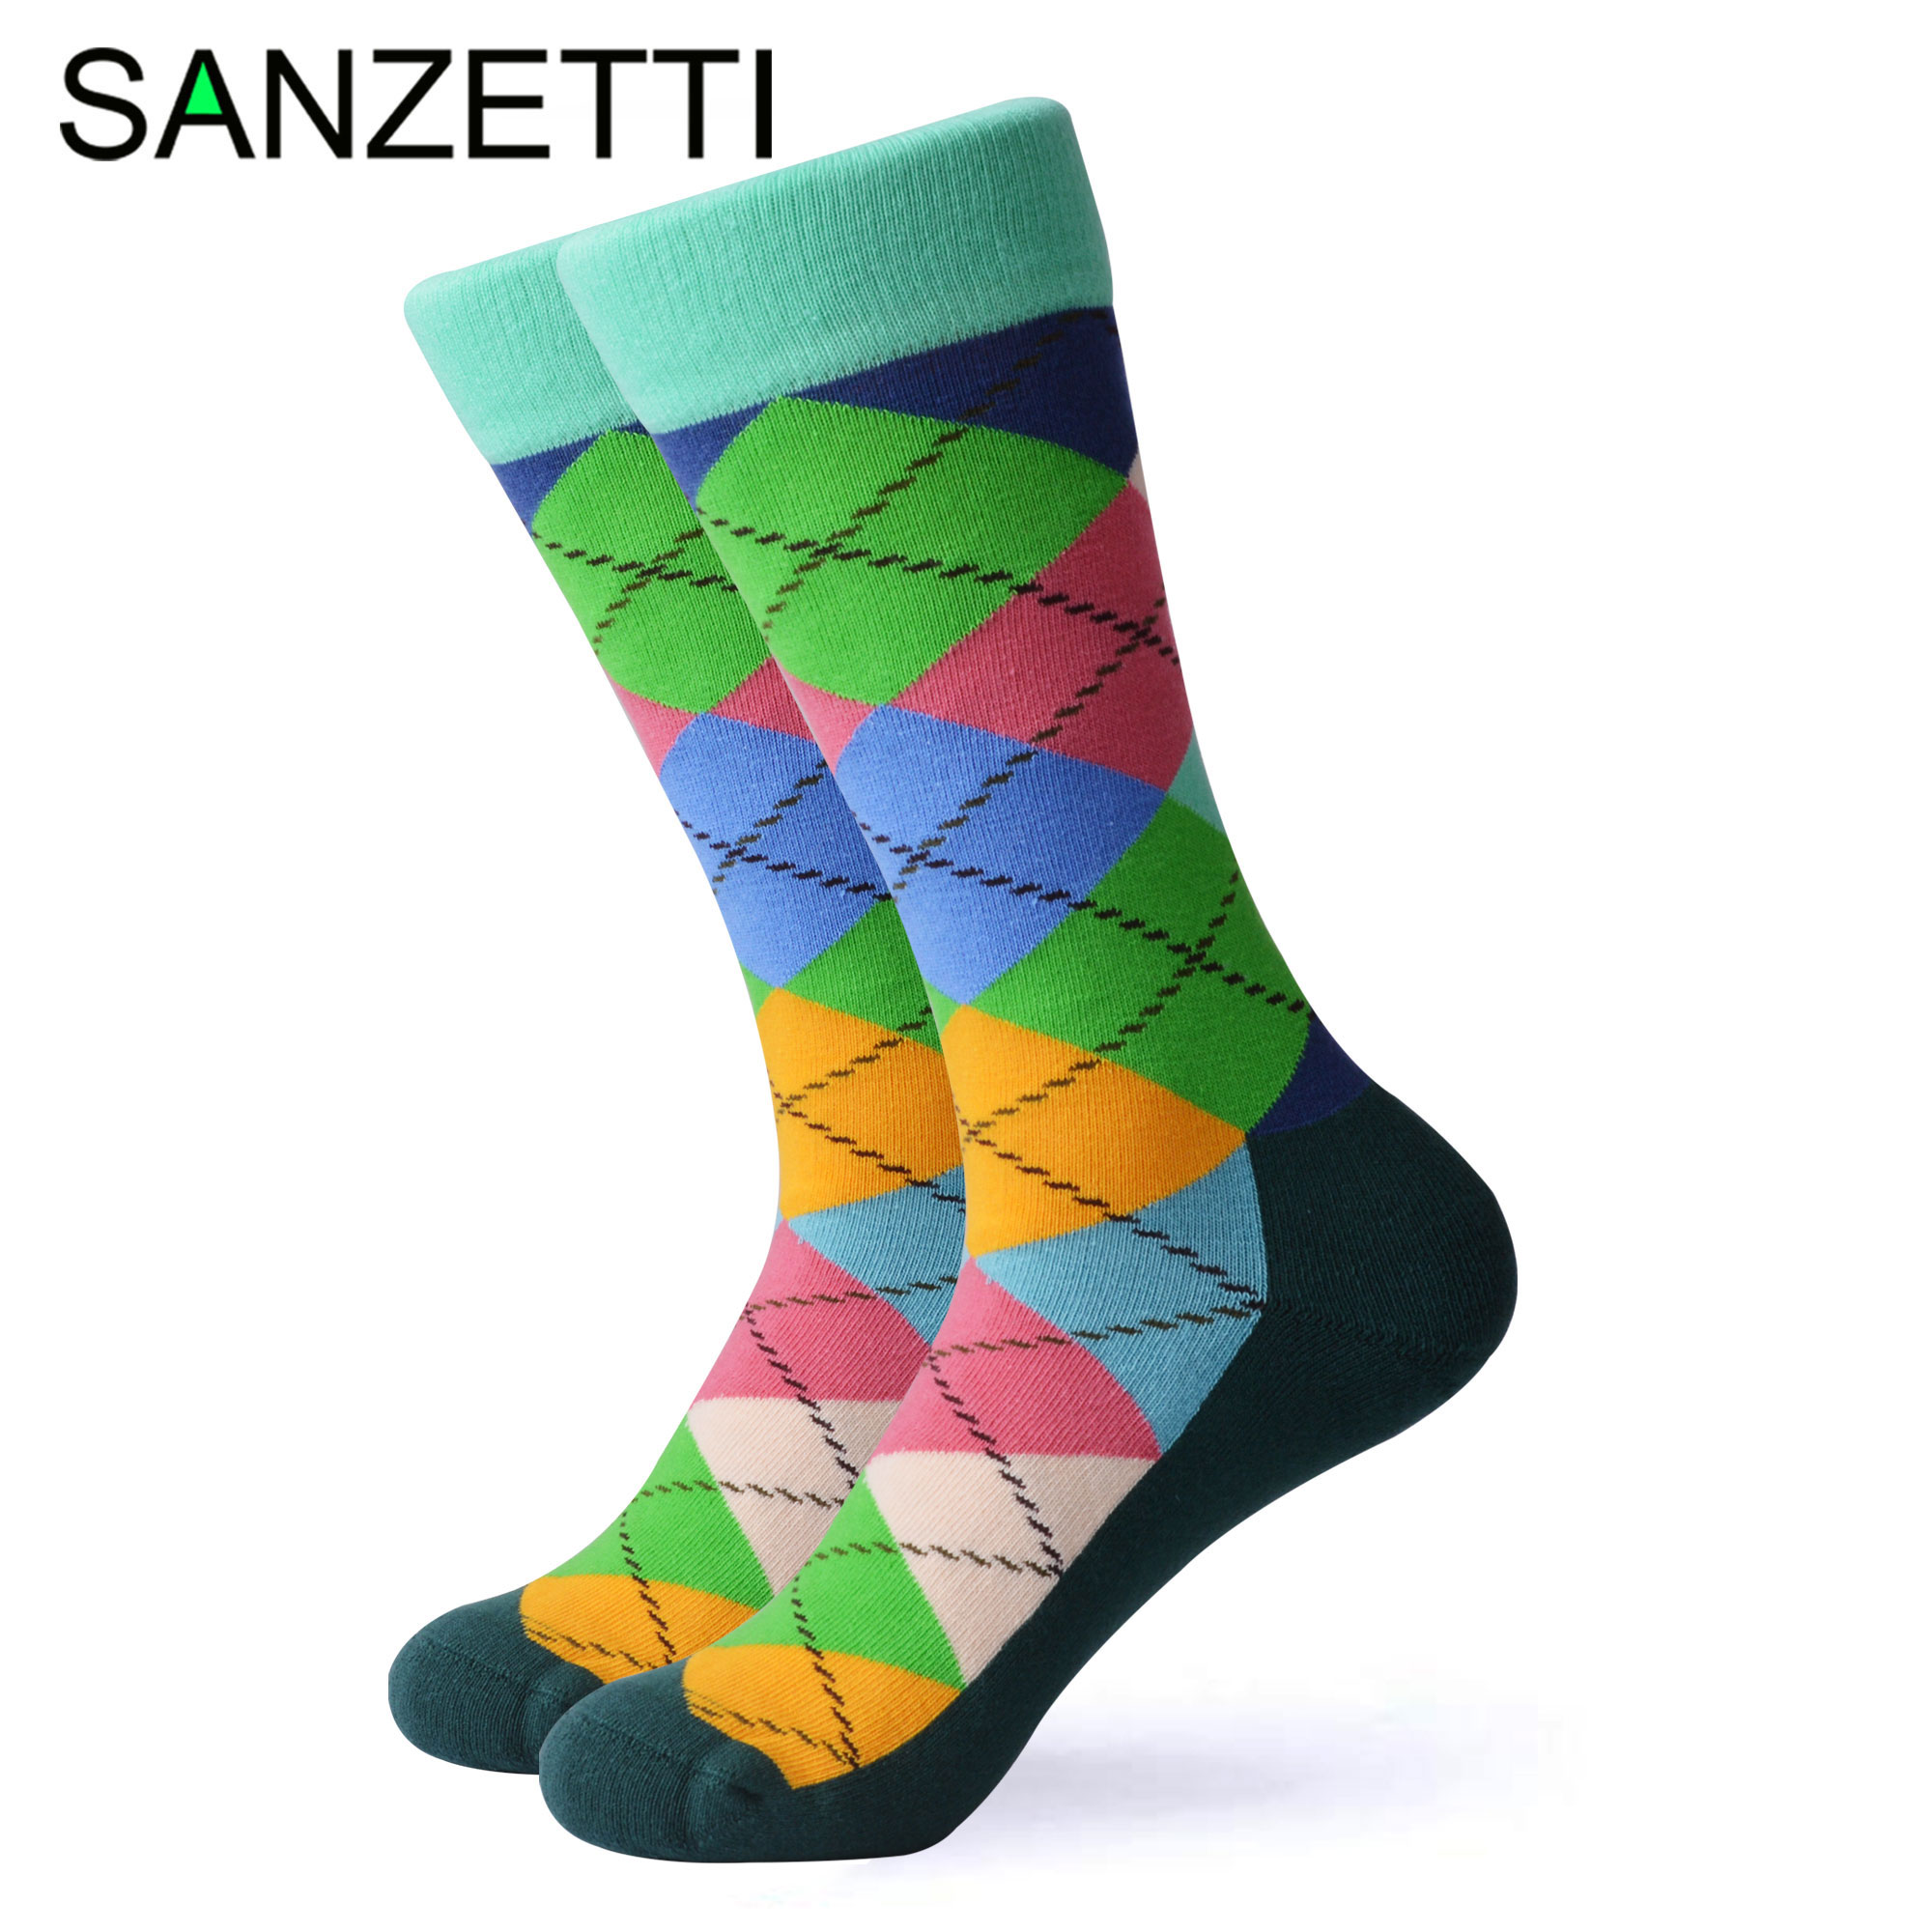 SANZETTI 1 Pair Happy Socks High Quality Men's Colorful Comfortable Combed Cotton Bright Novelty Gift Wedding Dress Terry Socks